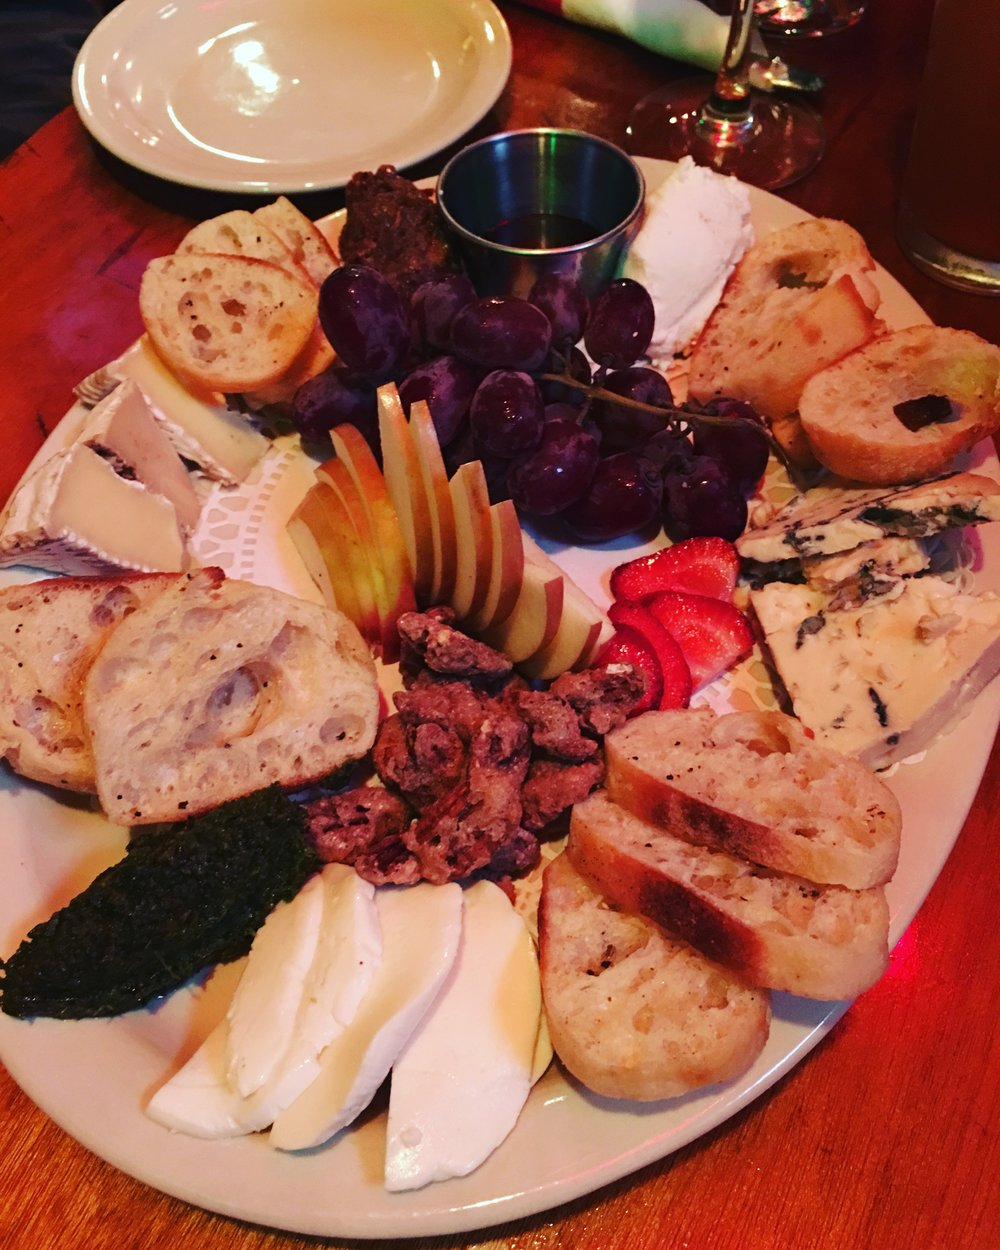 This one is from a restaurant in Killington, Vermont. We'll call this one the  Killing-It Cheese Plate.  It was AMAZING.